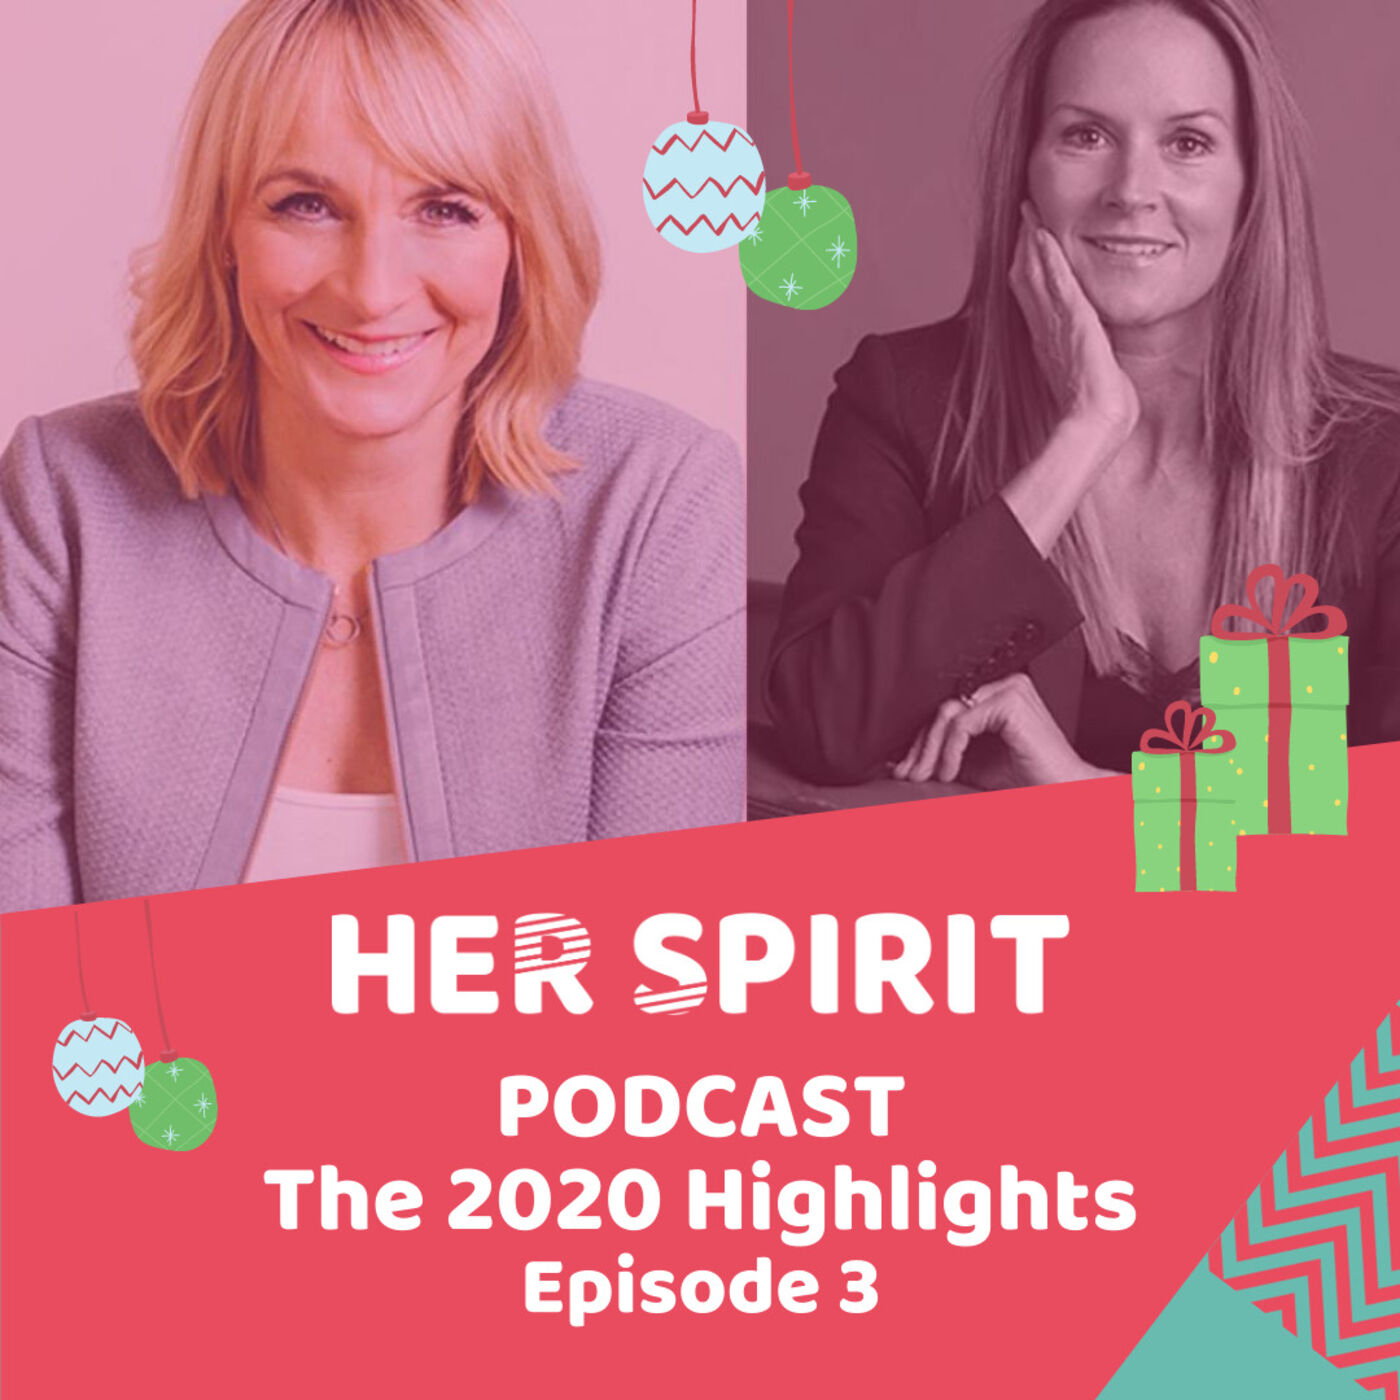 Louise and Annie review the podcasts from series 2. In this third of three and final 2020 episodes they talk about some of the guests they have spoken to including, Maxine Peake, Claire Danson, Dr Louise Newson, Bryony Gordon and many others.